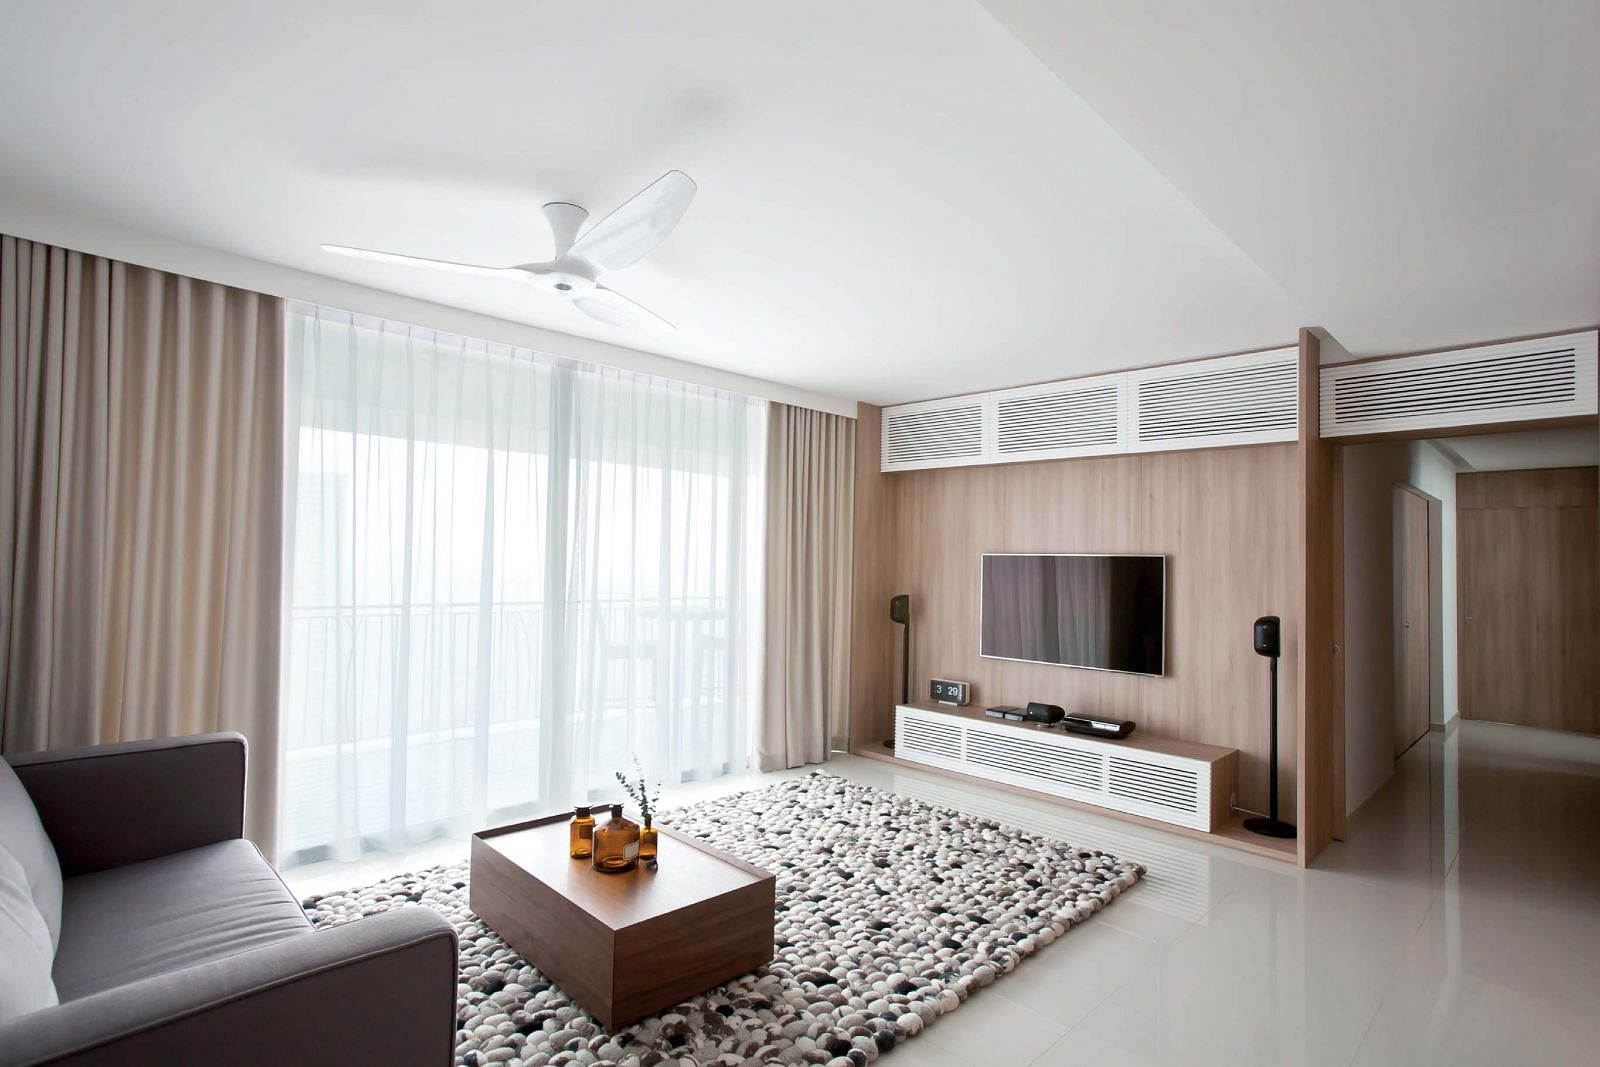 House Tour: A relaxing and homely five-room HDB apartment | Home ...